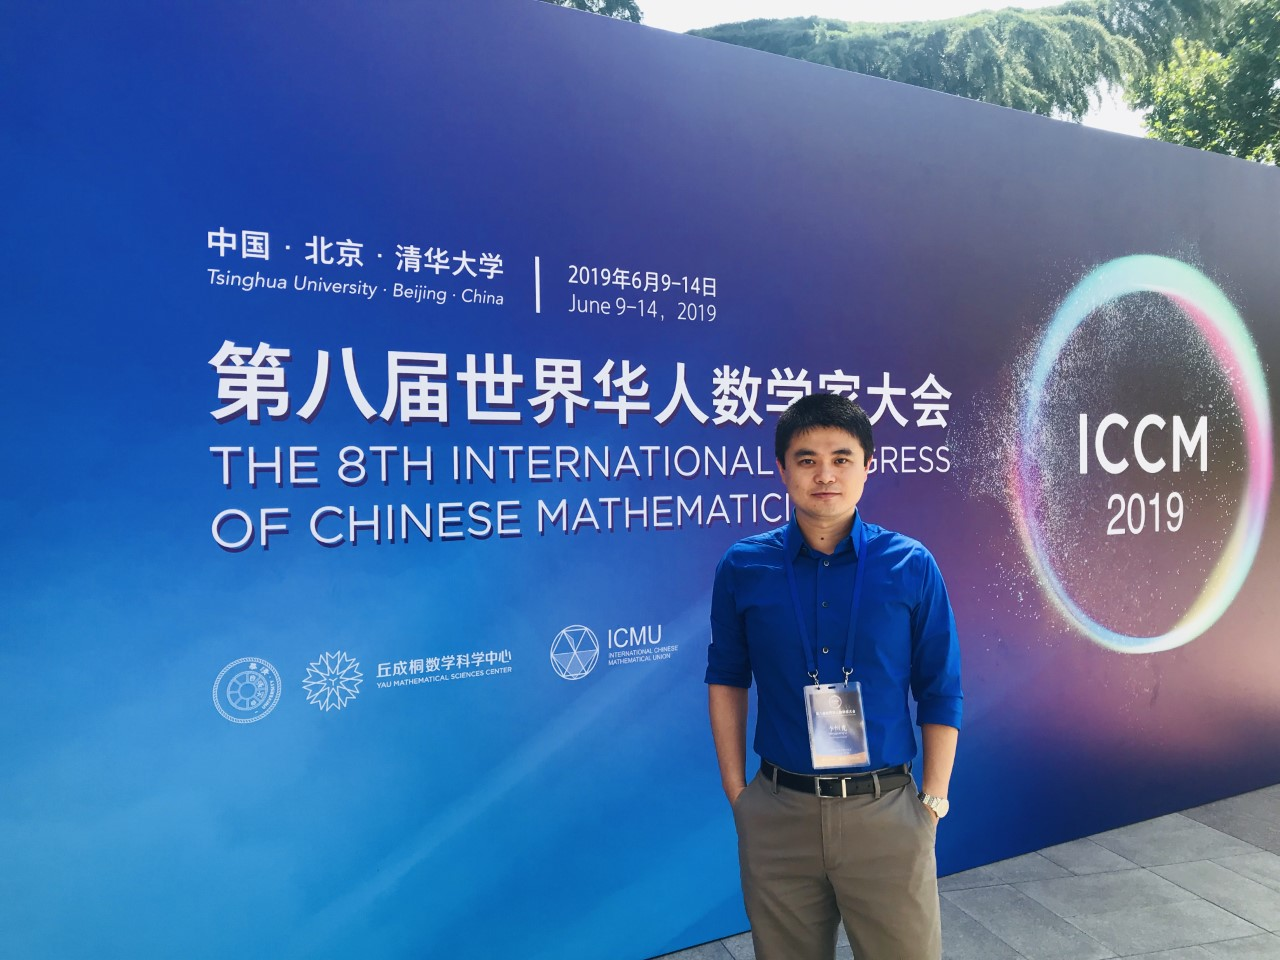 Dr. Li at the 2019 ICCM Conference